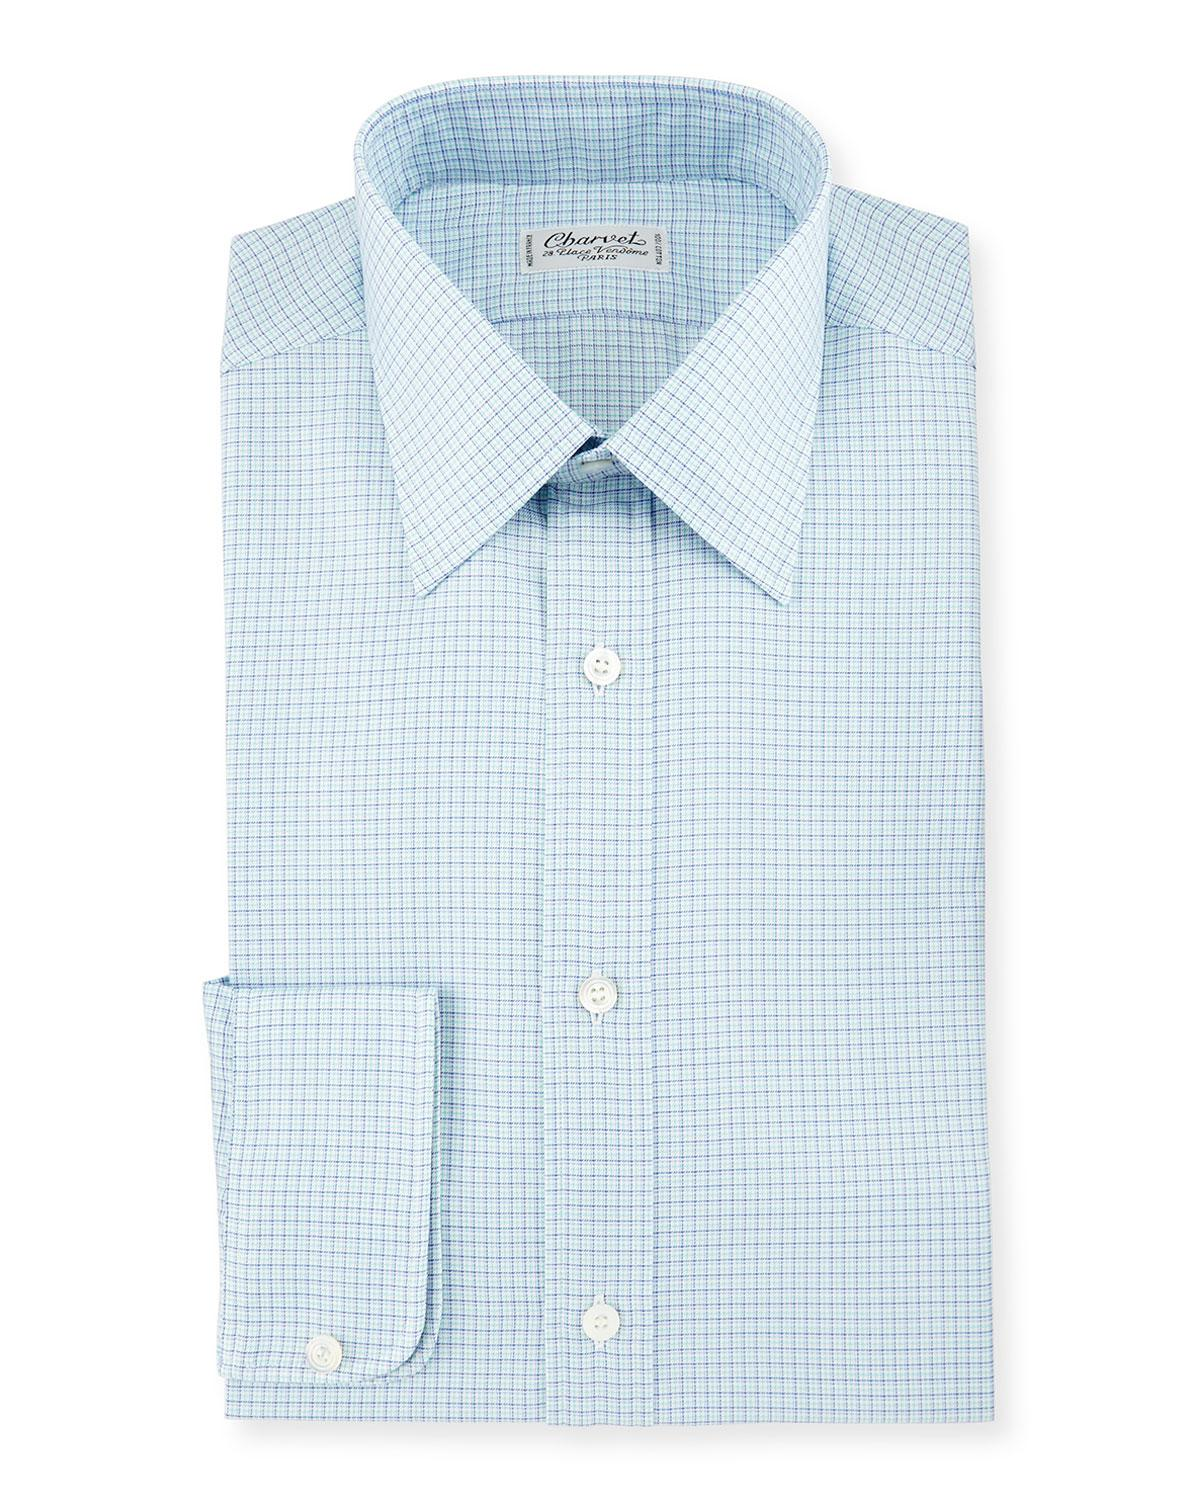 Lyst charvet check plaid dress shirt in blue for men for Blue check dress shirt